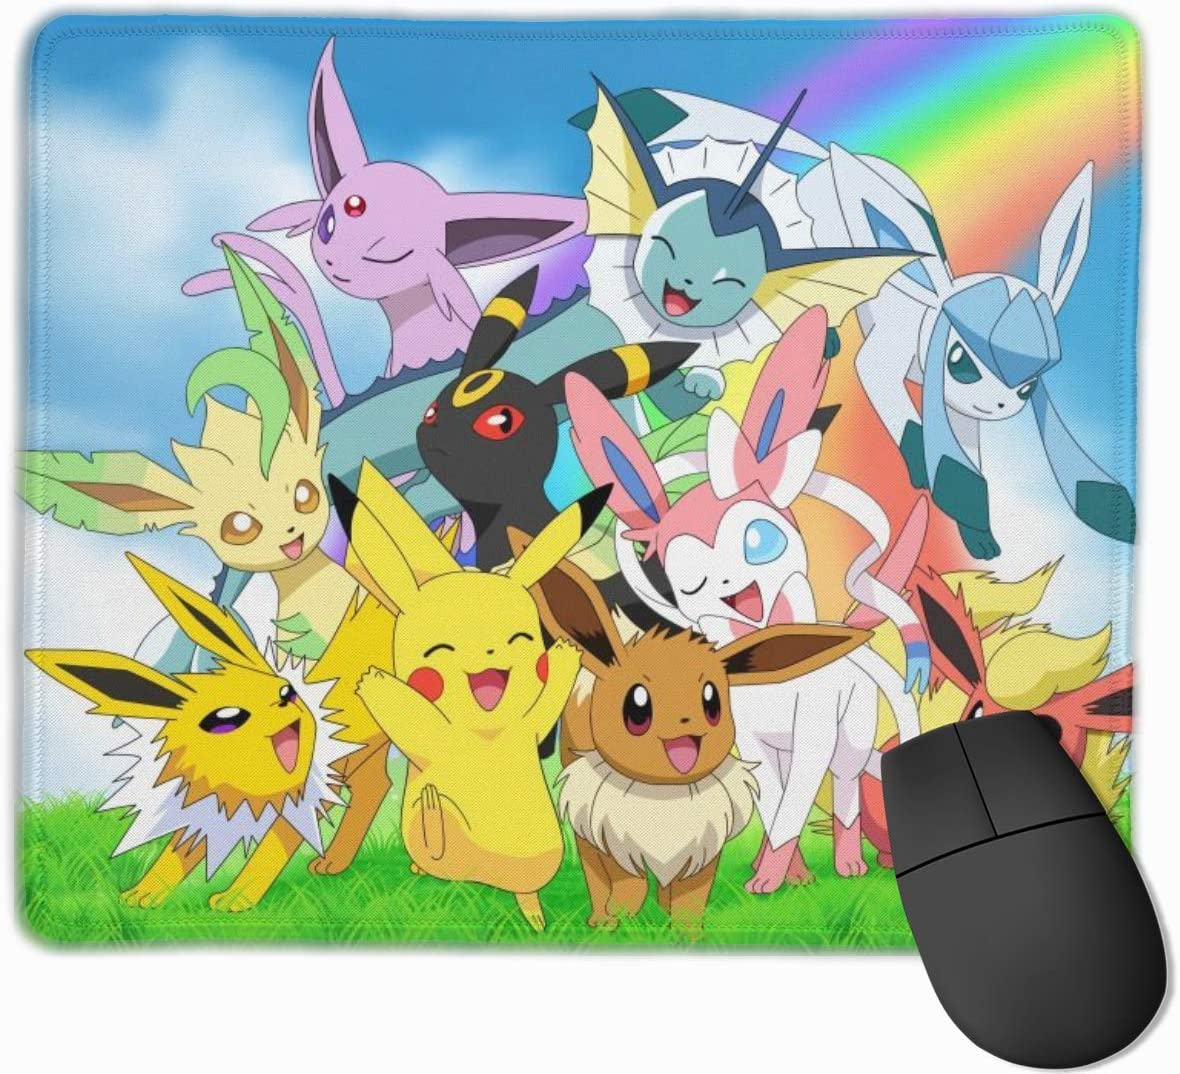 Men Mouse Pad Japanese Anime Pikachu Personalized Non-Slip Mouse Mat Cool Desk Pad Rubber Base Desk Mat for Office,Computer,Professional Esports